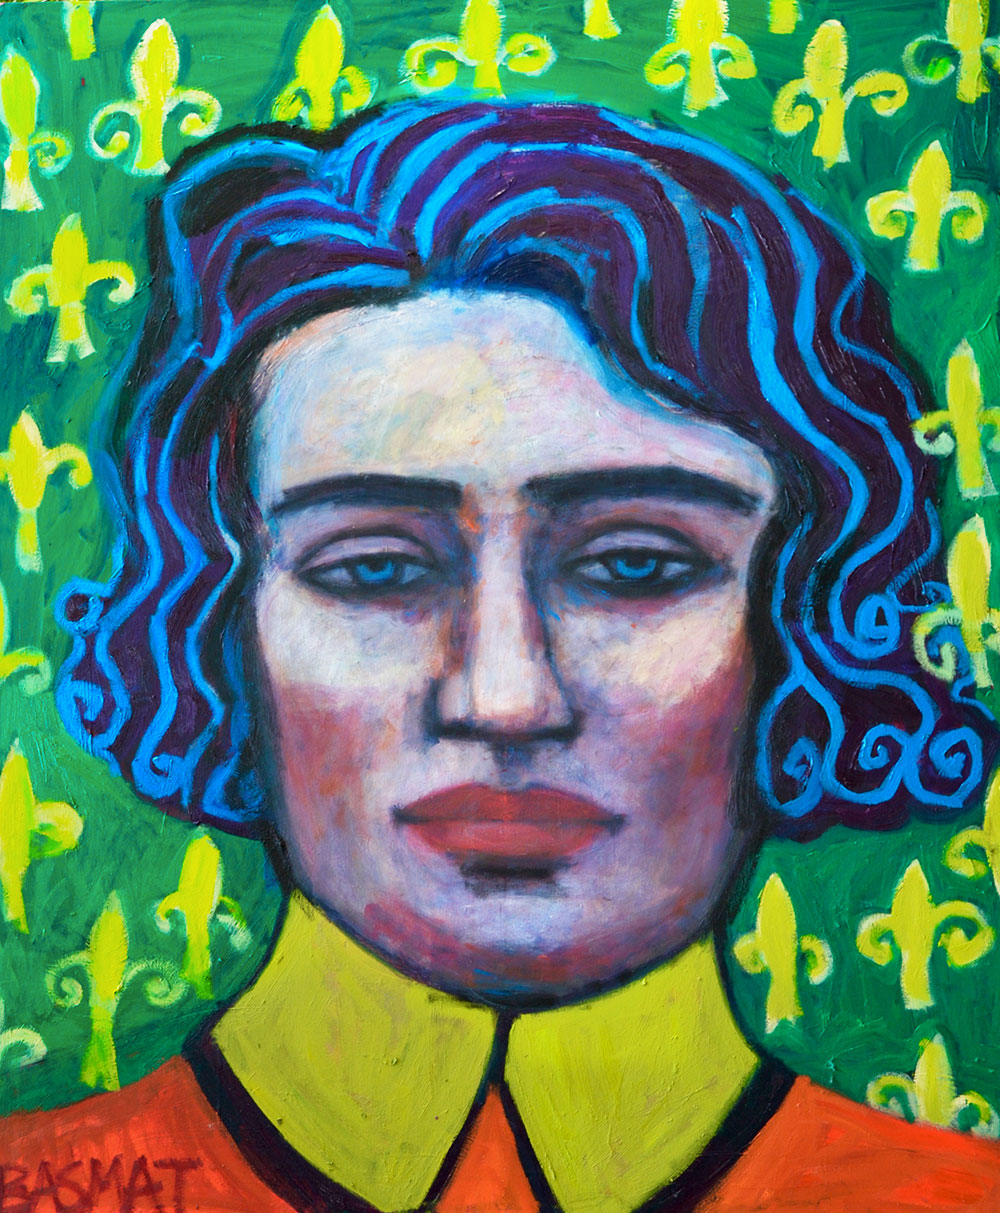 The Prince with the Blue Hair    -   140cm x 150cm, Oil on Canvas